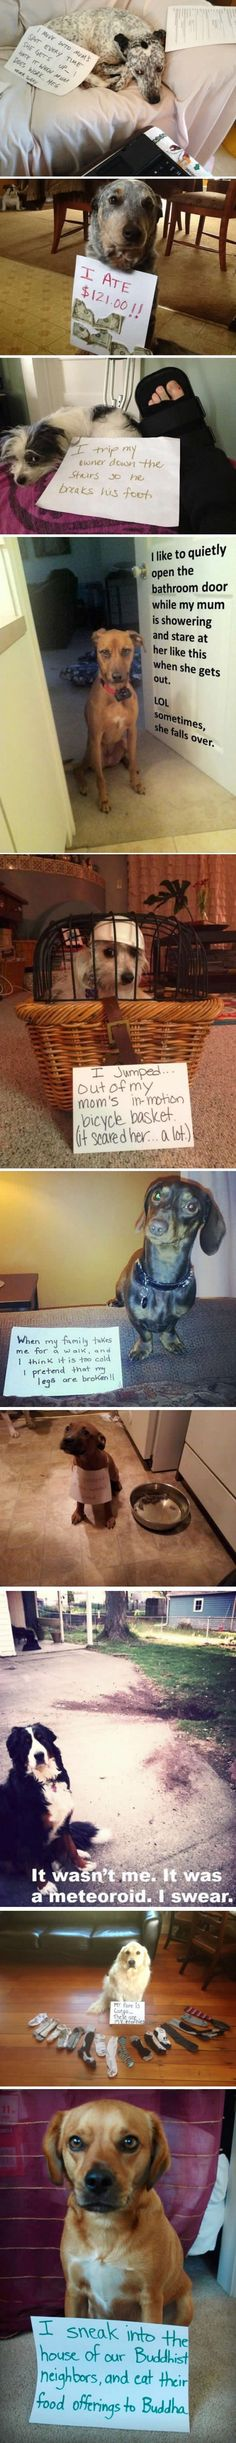 Funny Dog Shaming - notice how you never see any cat shaming. This is clearly bc they're not as dumb as dogs.>>>>actually I have seen cat shaming Cute Funny Animals, Funny Animal Pictures, Funny Cute, Funny Dogs, Super Funny, Hilarious Pictures, Silly Dogs, Funny Photos, Top Funny